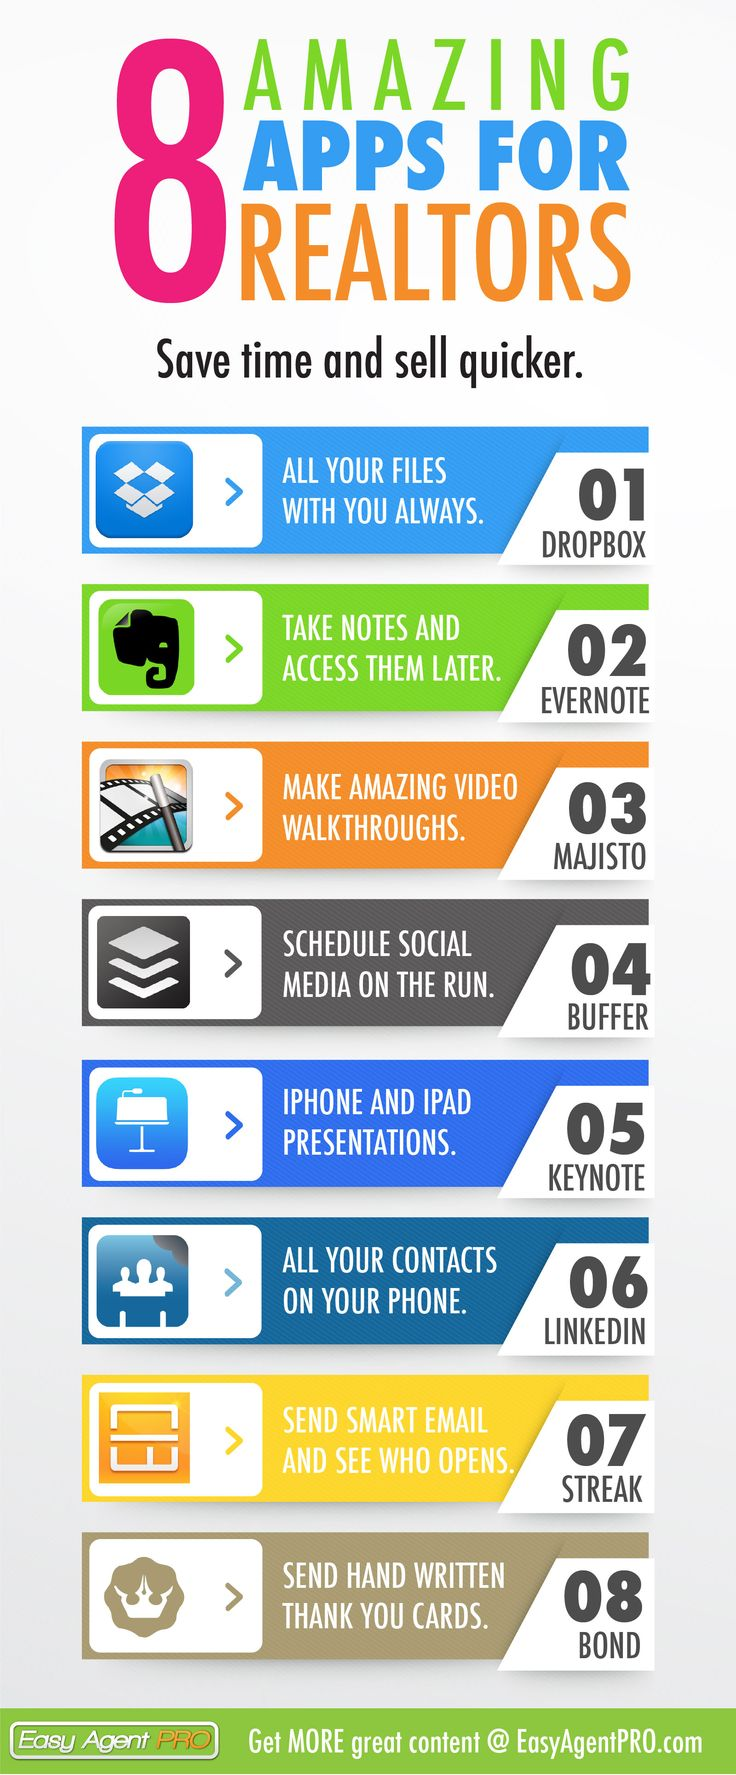 8 Epic iOS Apps For Realtors to improve your productivity. Infographic describing 8 apps to make your life easier. Save time and sell quicker.